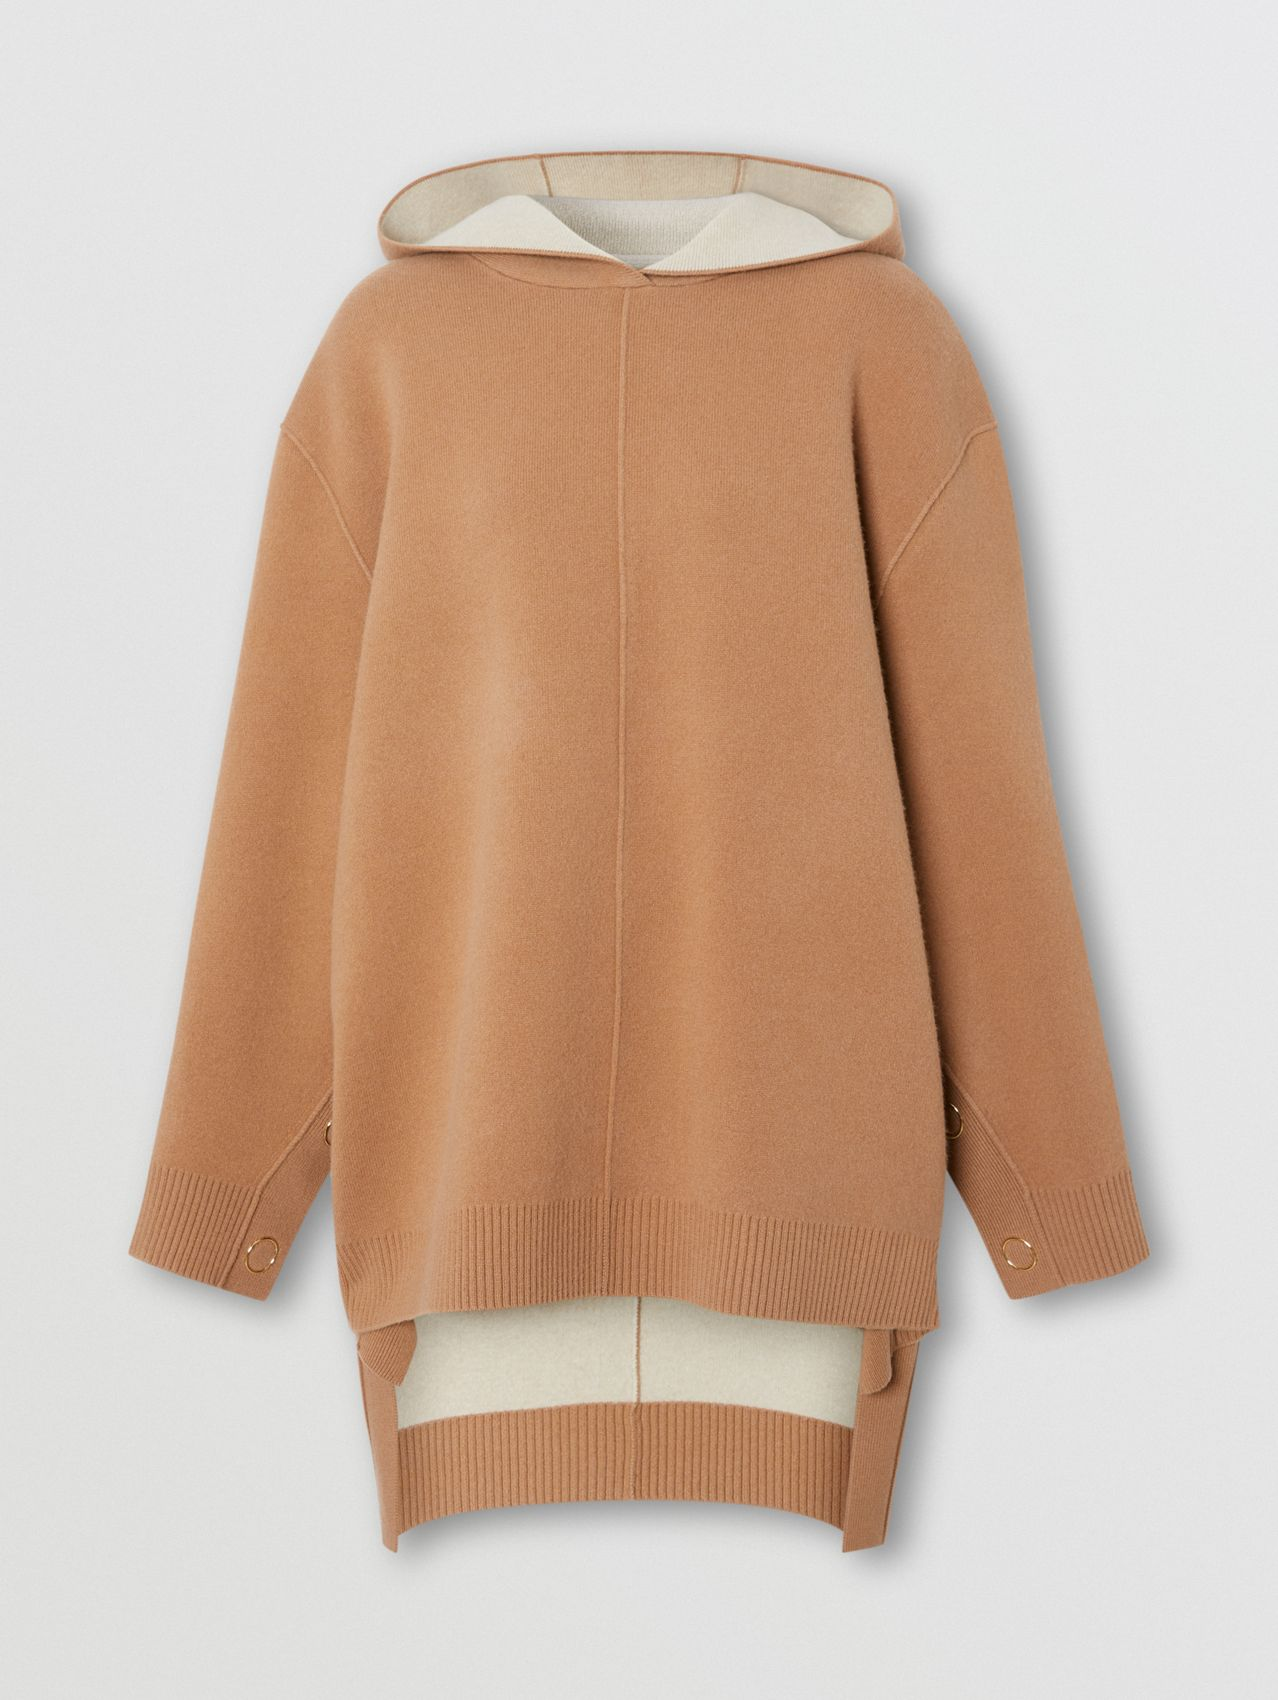 Double-faced Merino Wool Cashmere Blend Hoodie in Warm Camel